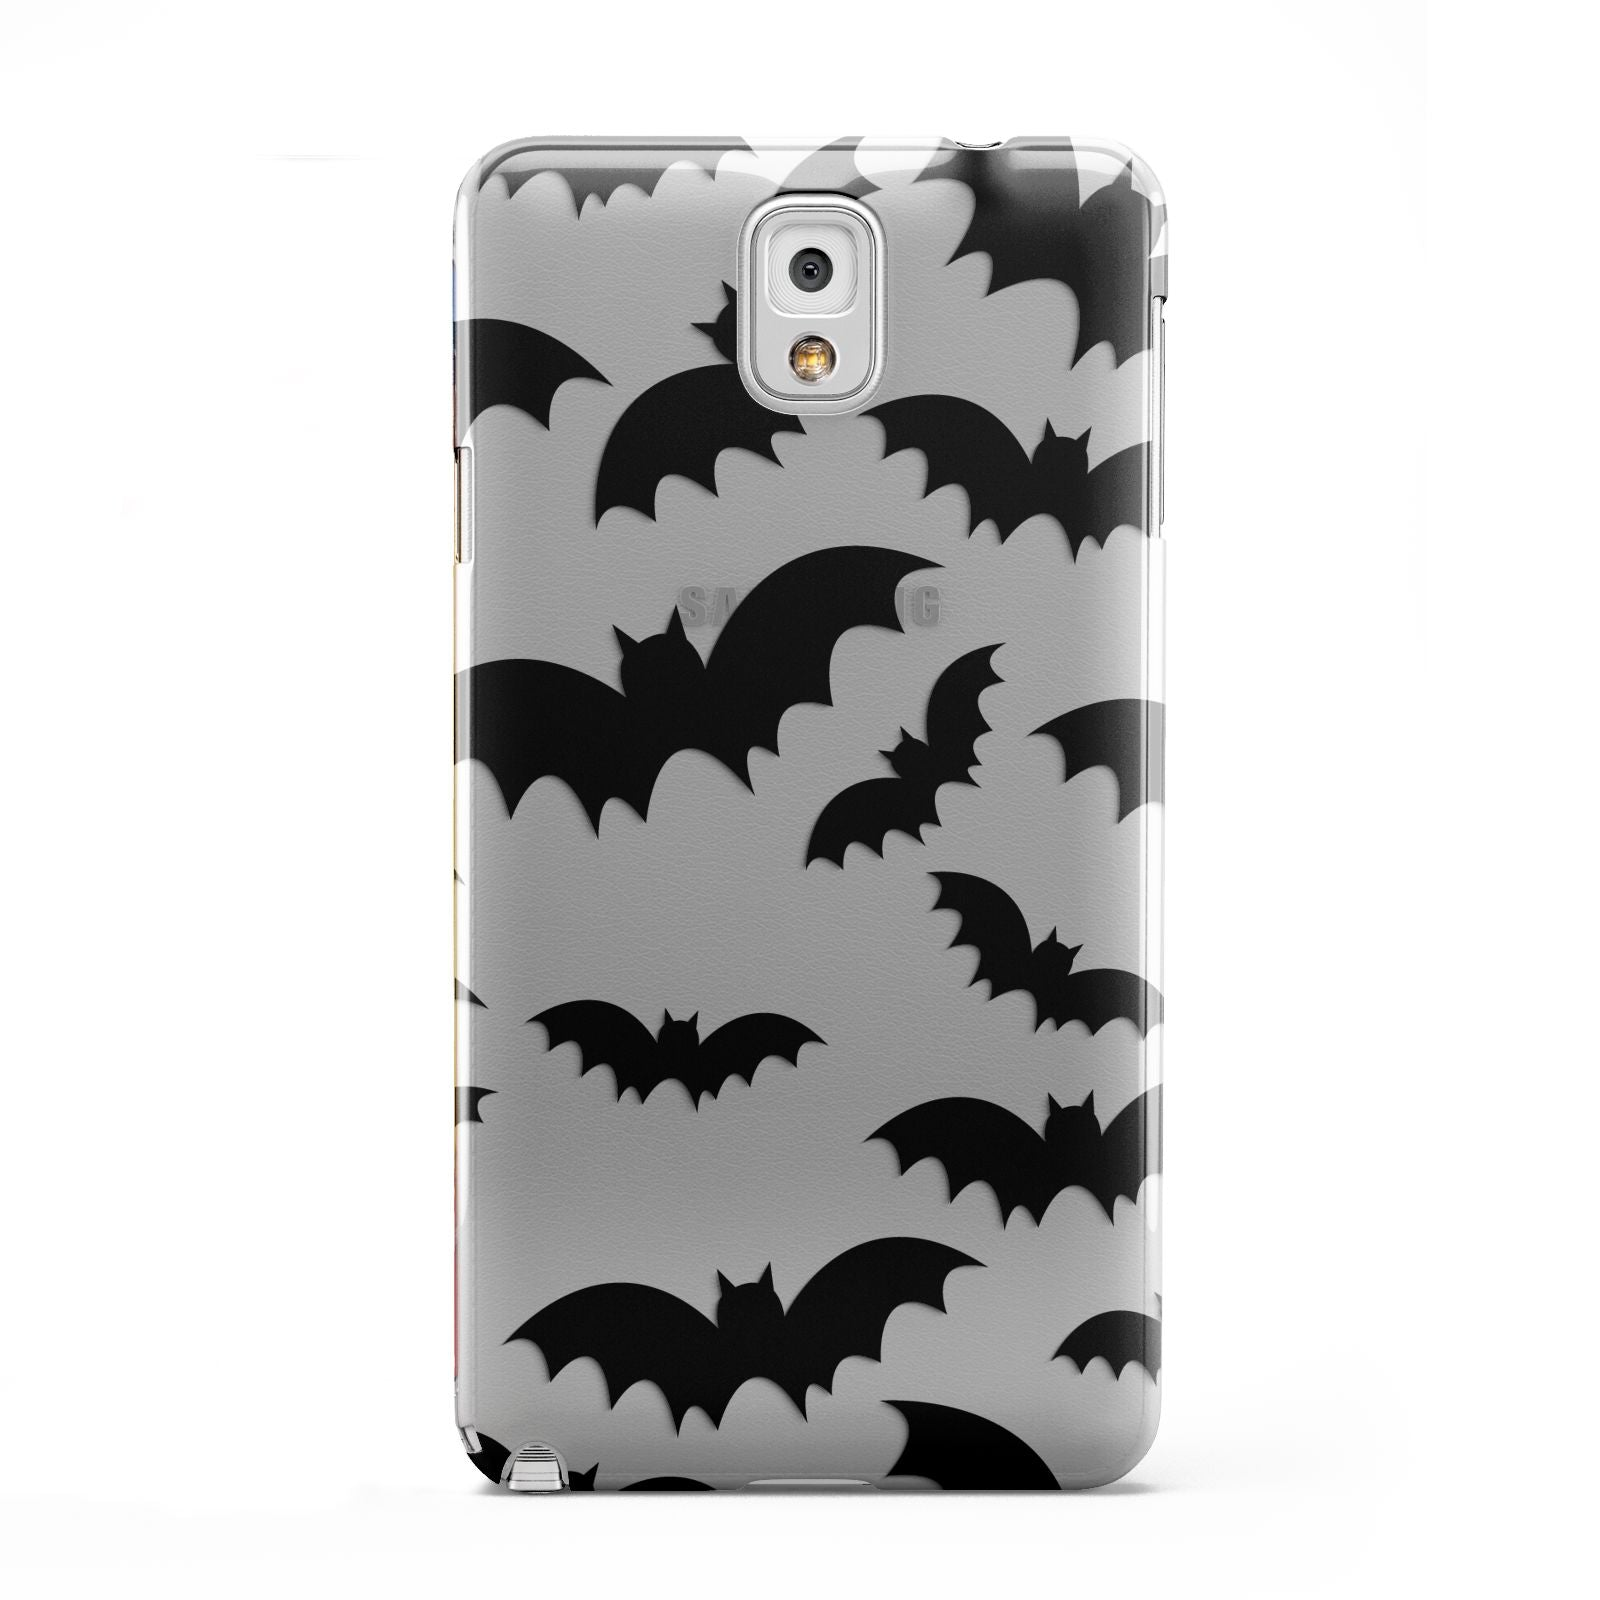 Bat Halloween Print Samsung Galaxy Note 3 Case